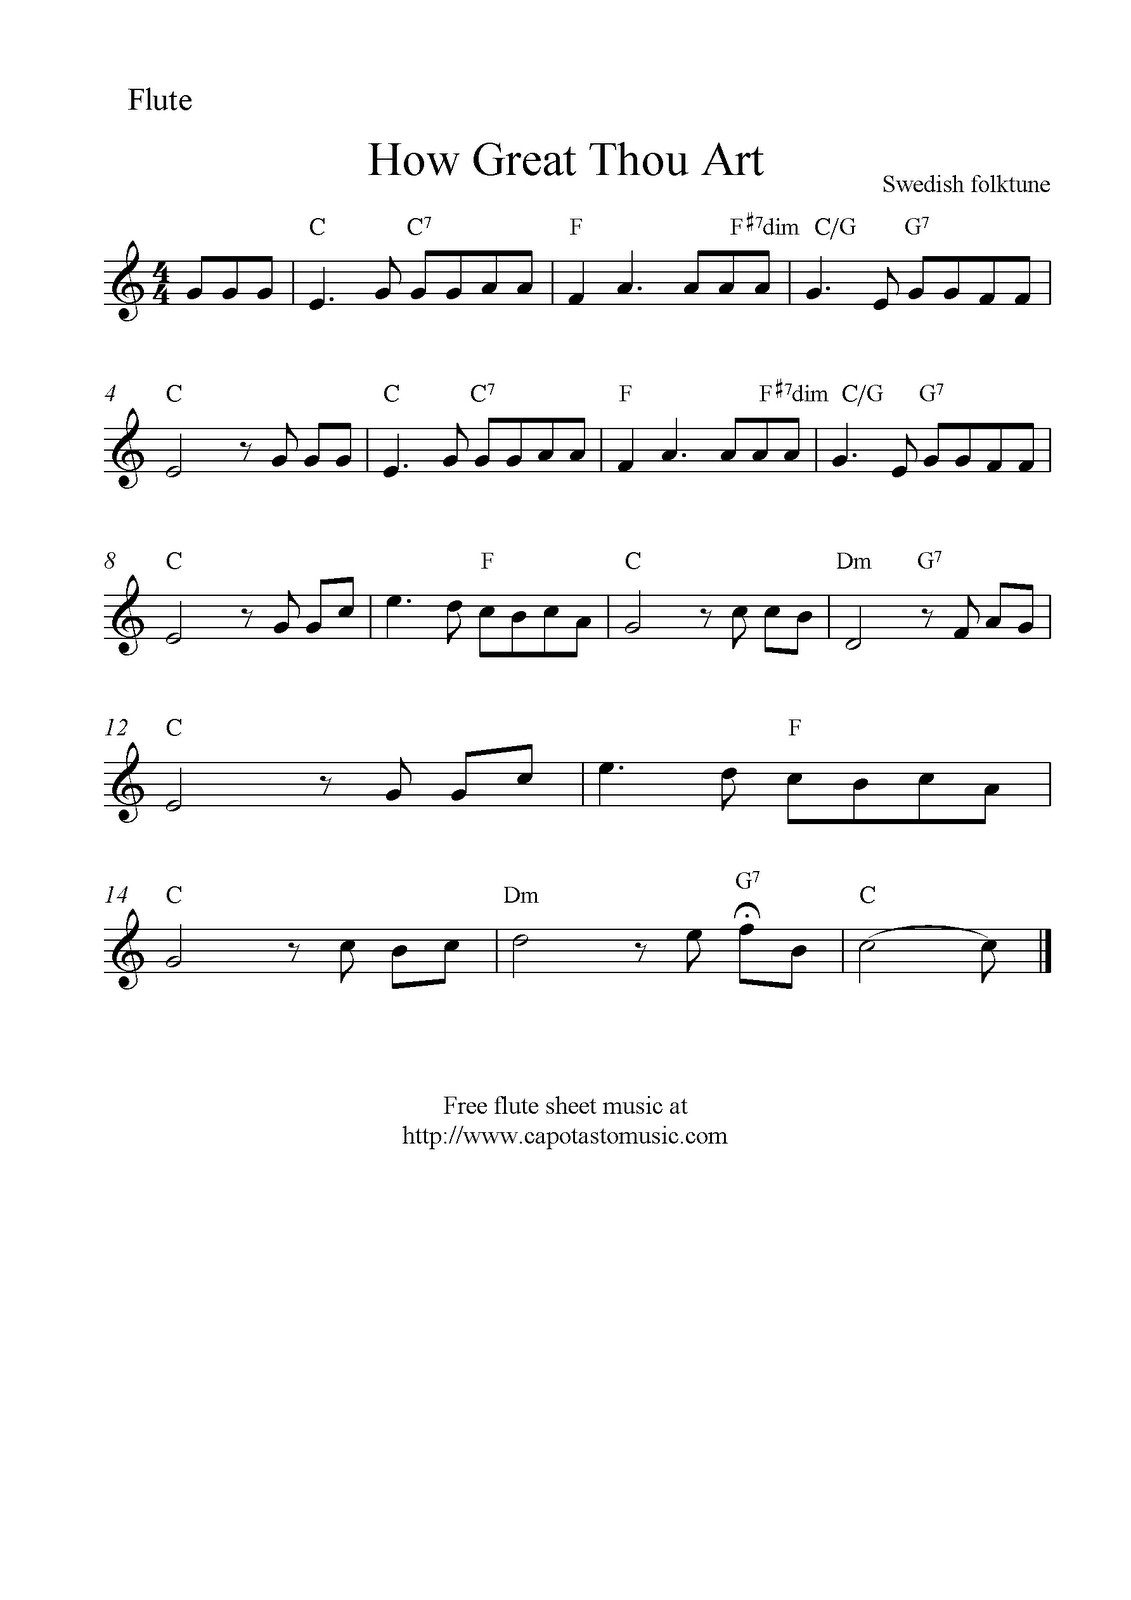 How Great Thou Art Chords How Great Thou Art Free Christian Flute Sheet Music Notes